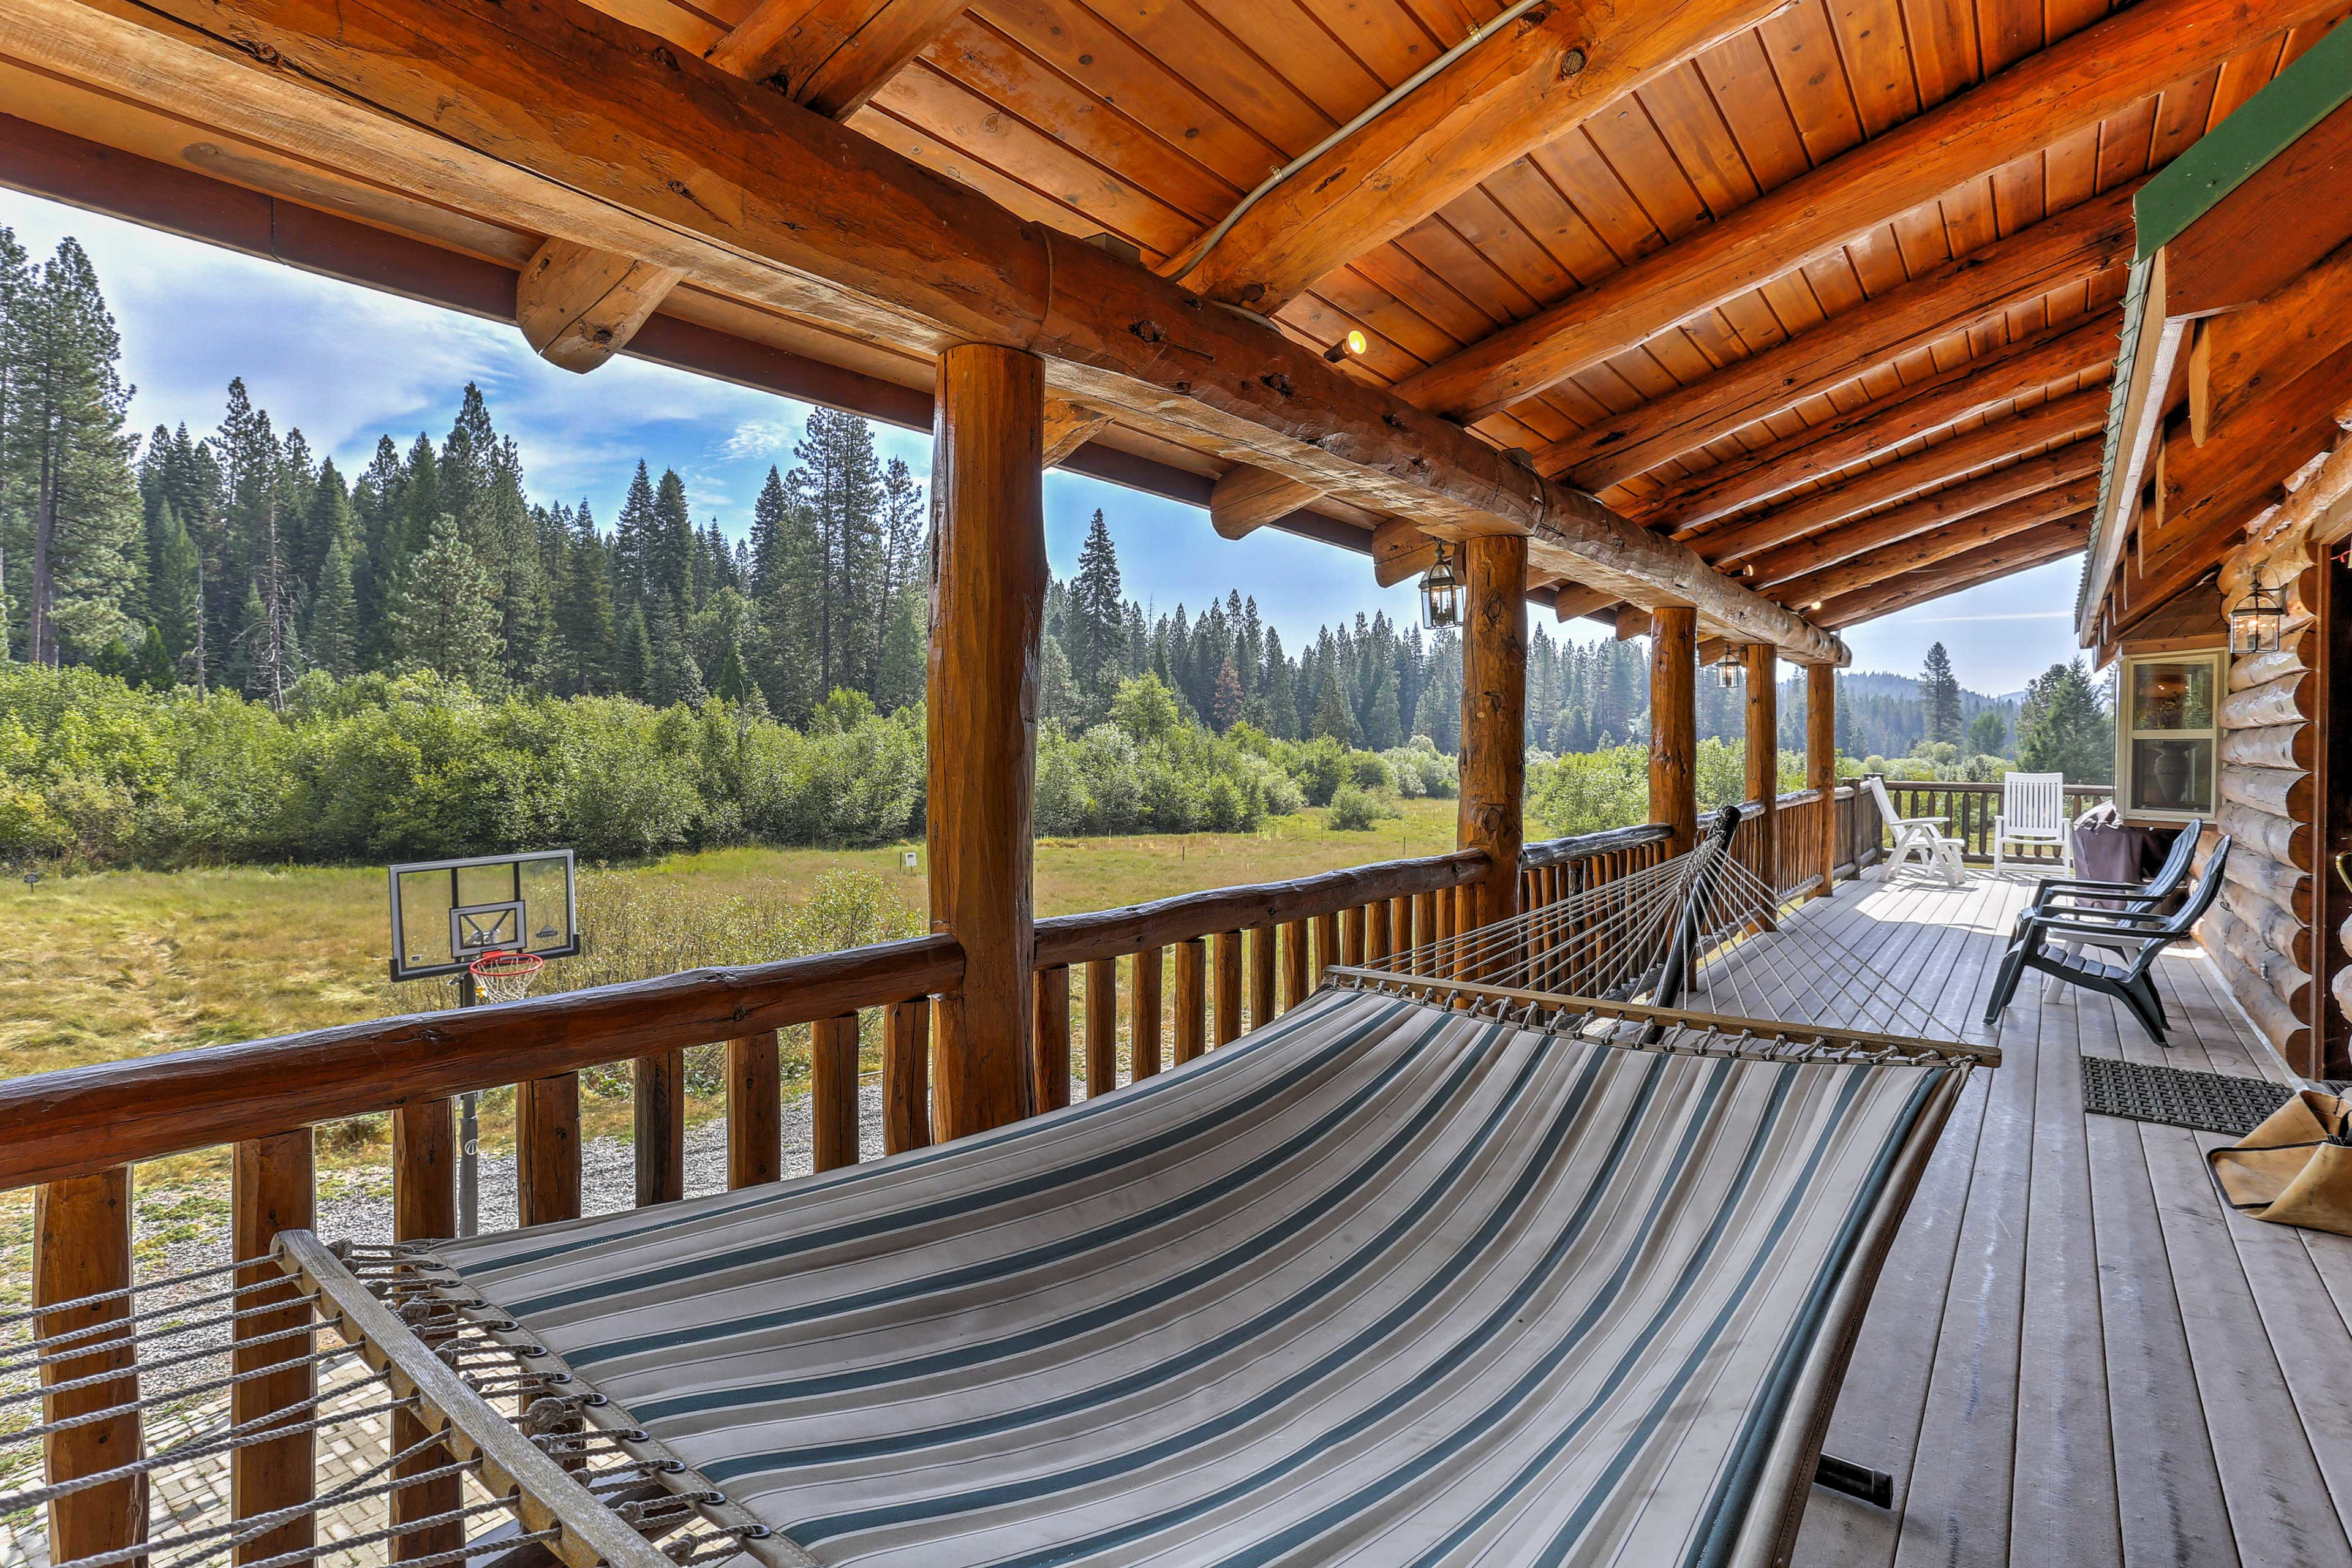 Take a nap in the hammock on the wraparound deck.